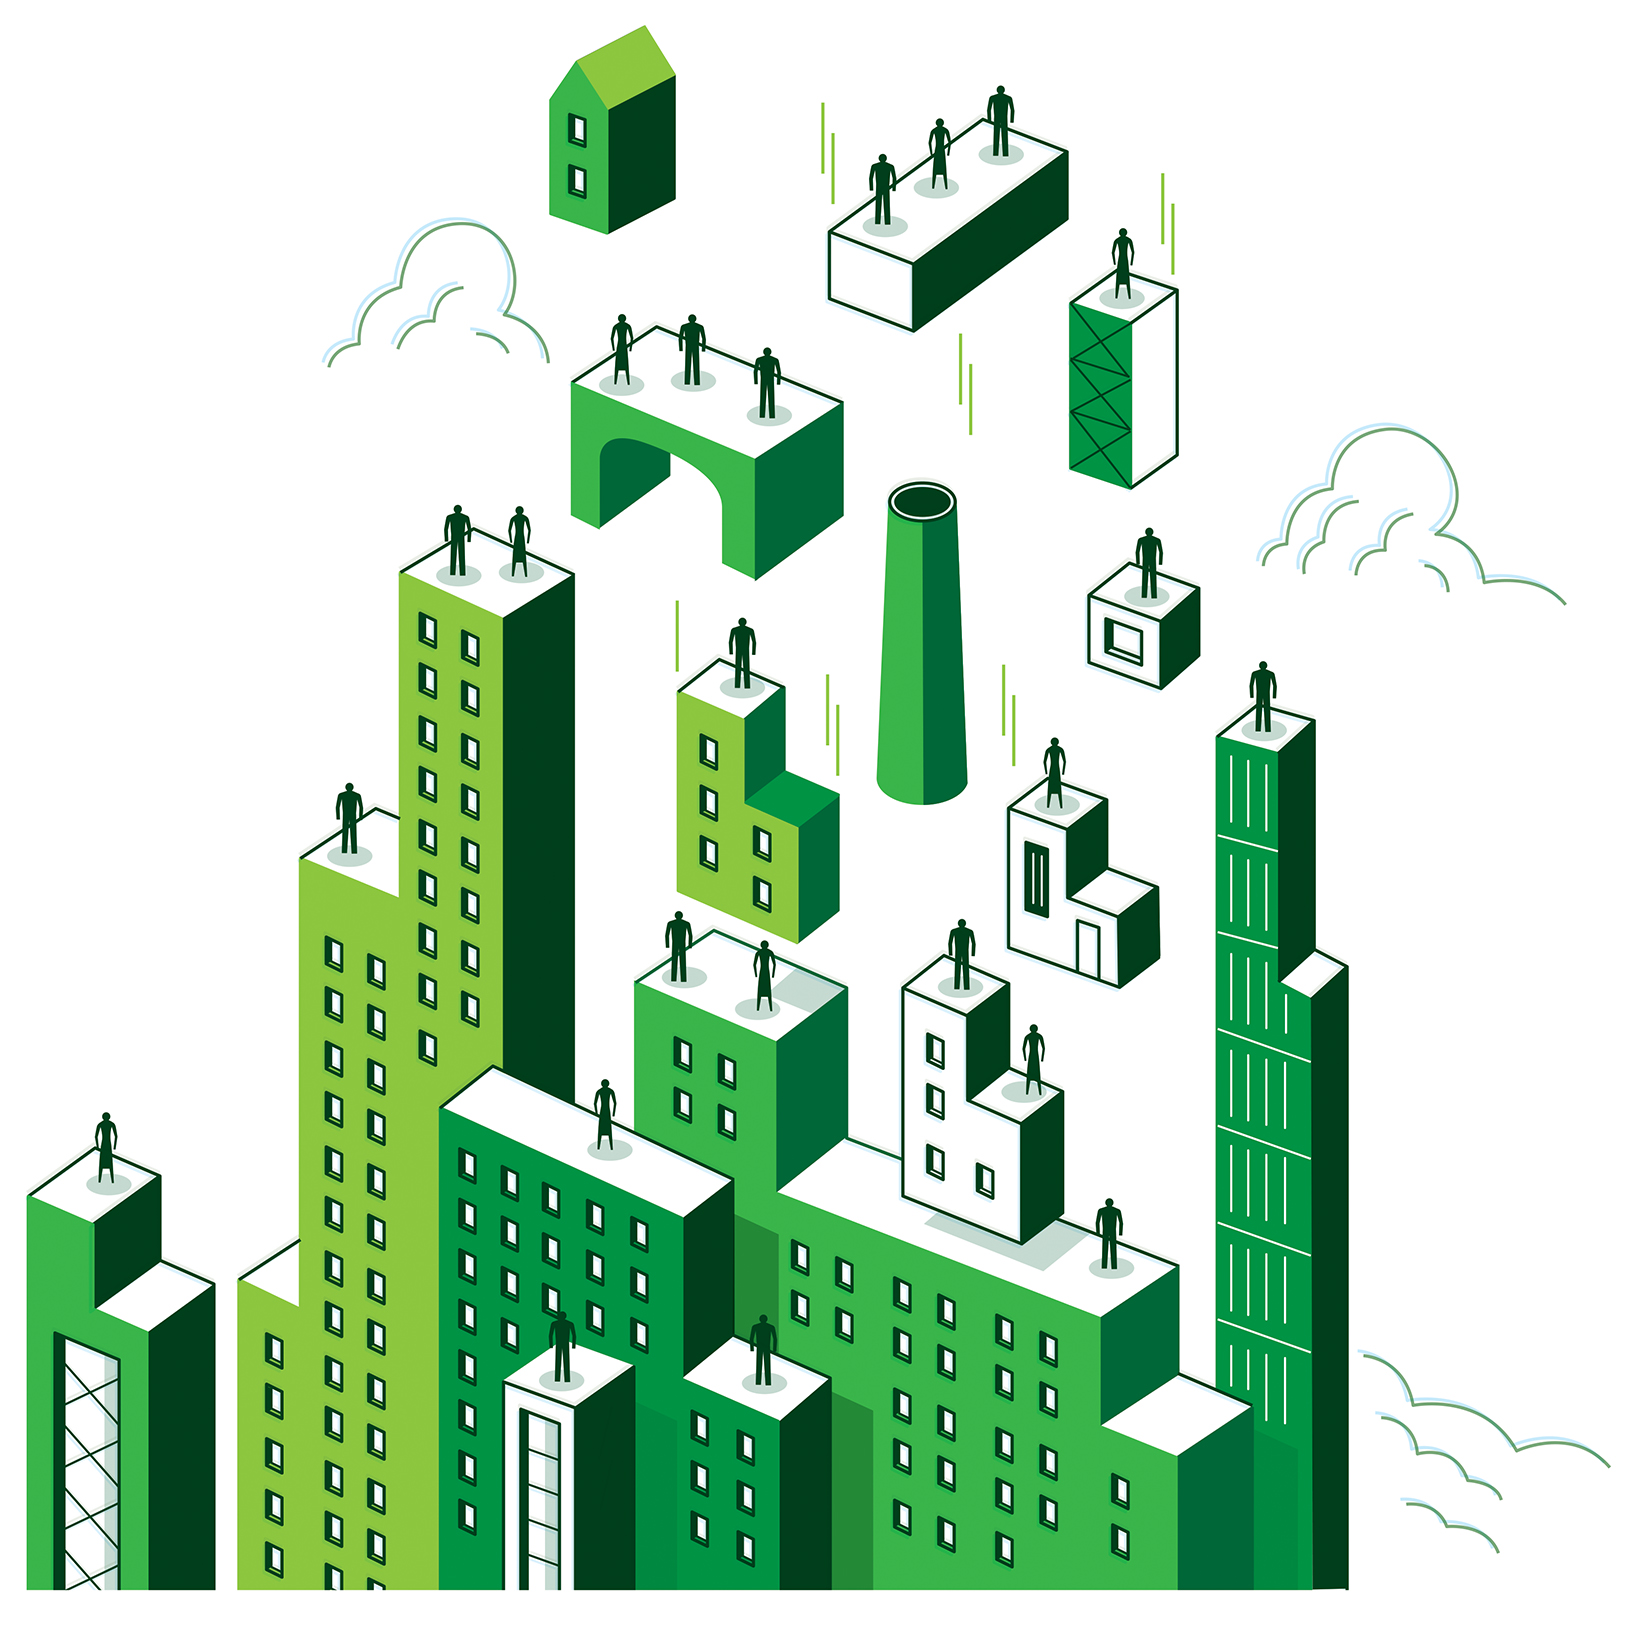 Drawing of tall green buildings